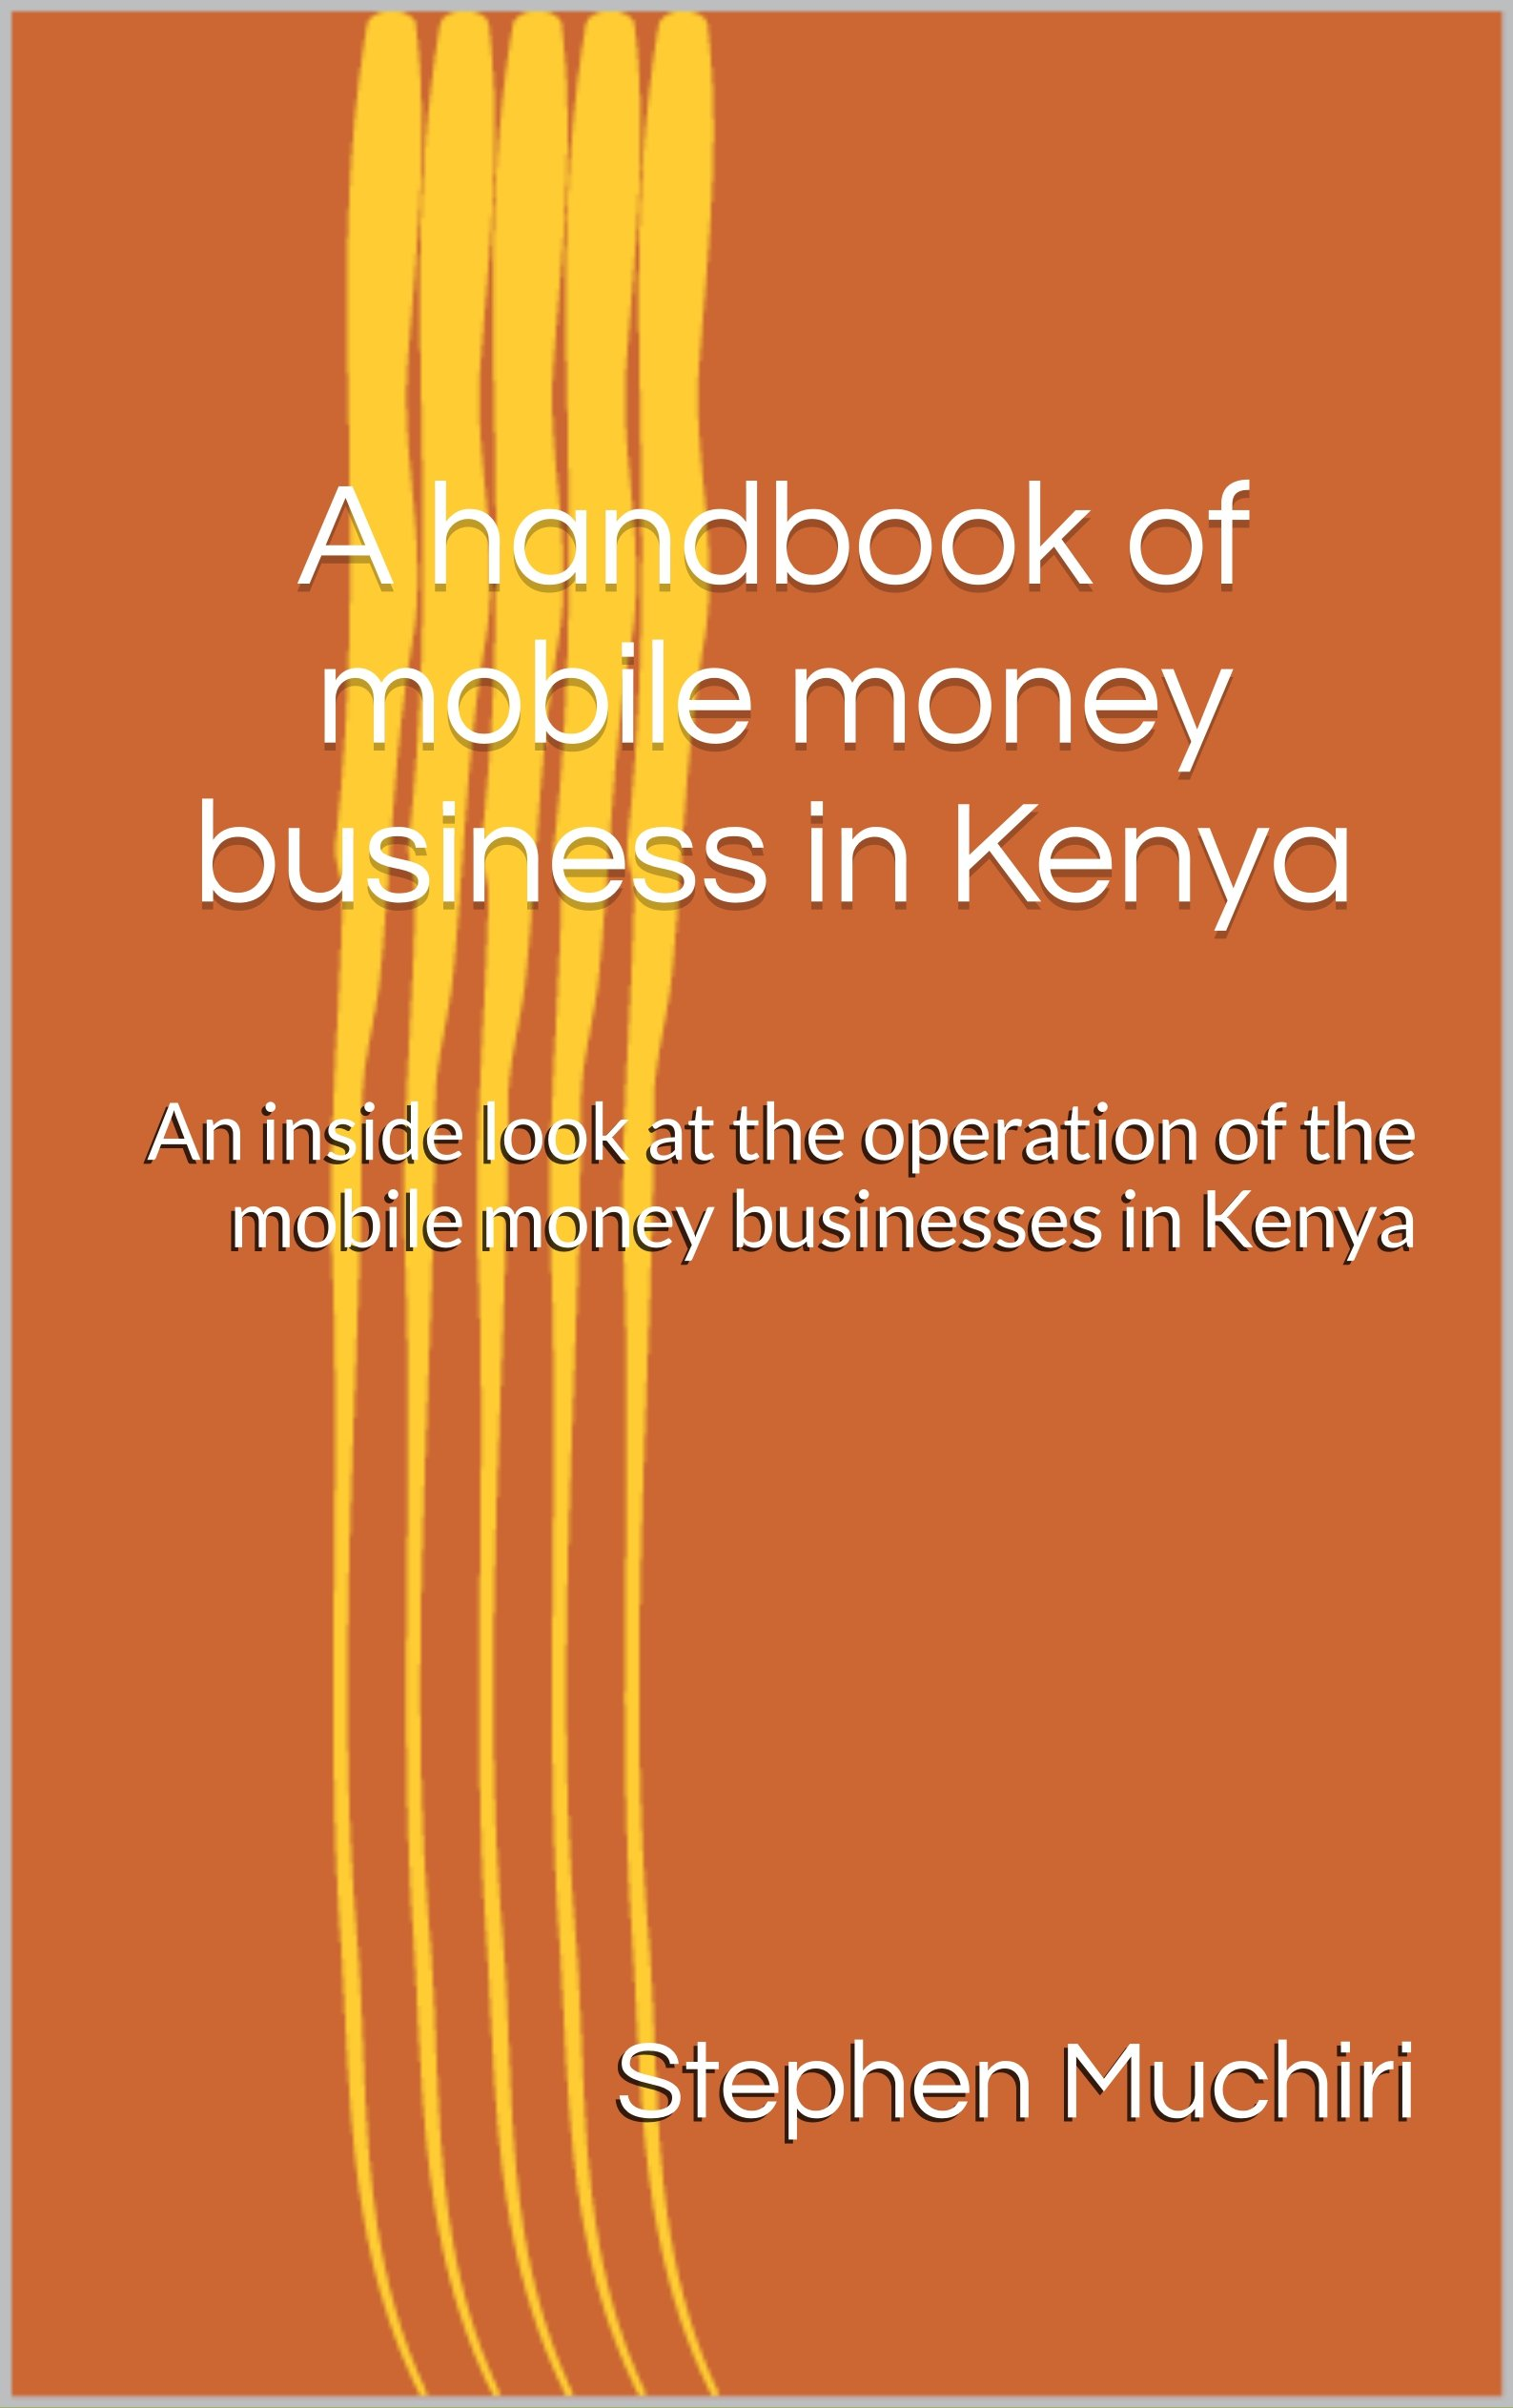 A handbook of mobile money business in Kenya: An inside look at the operation of the mobile money businesses in Kenya